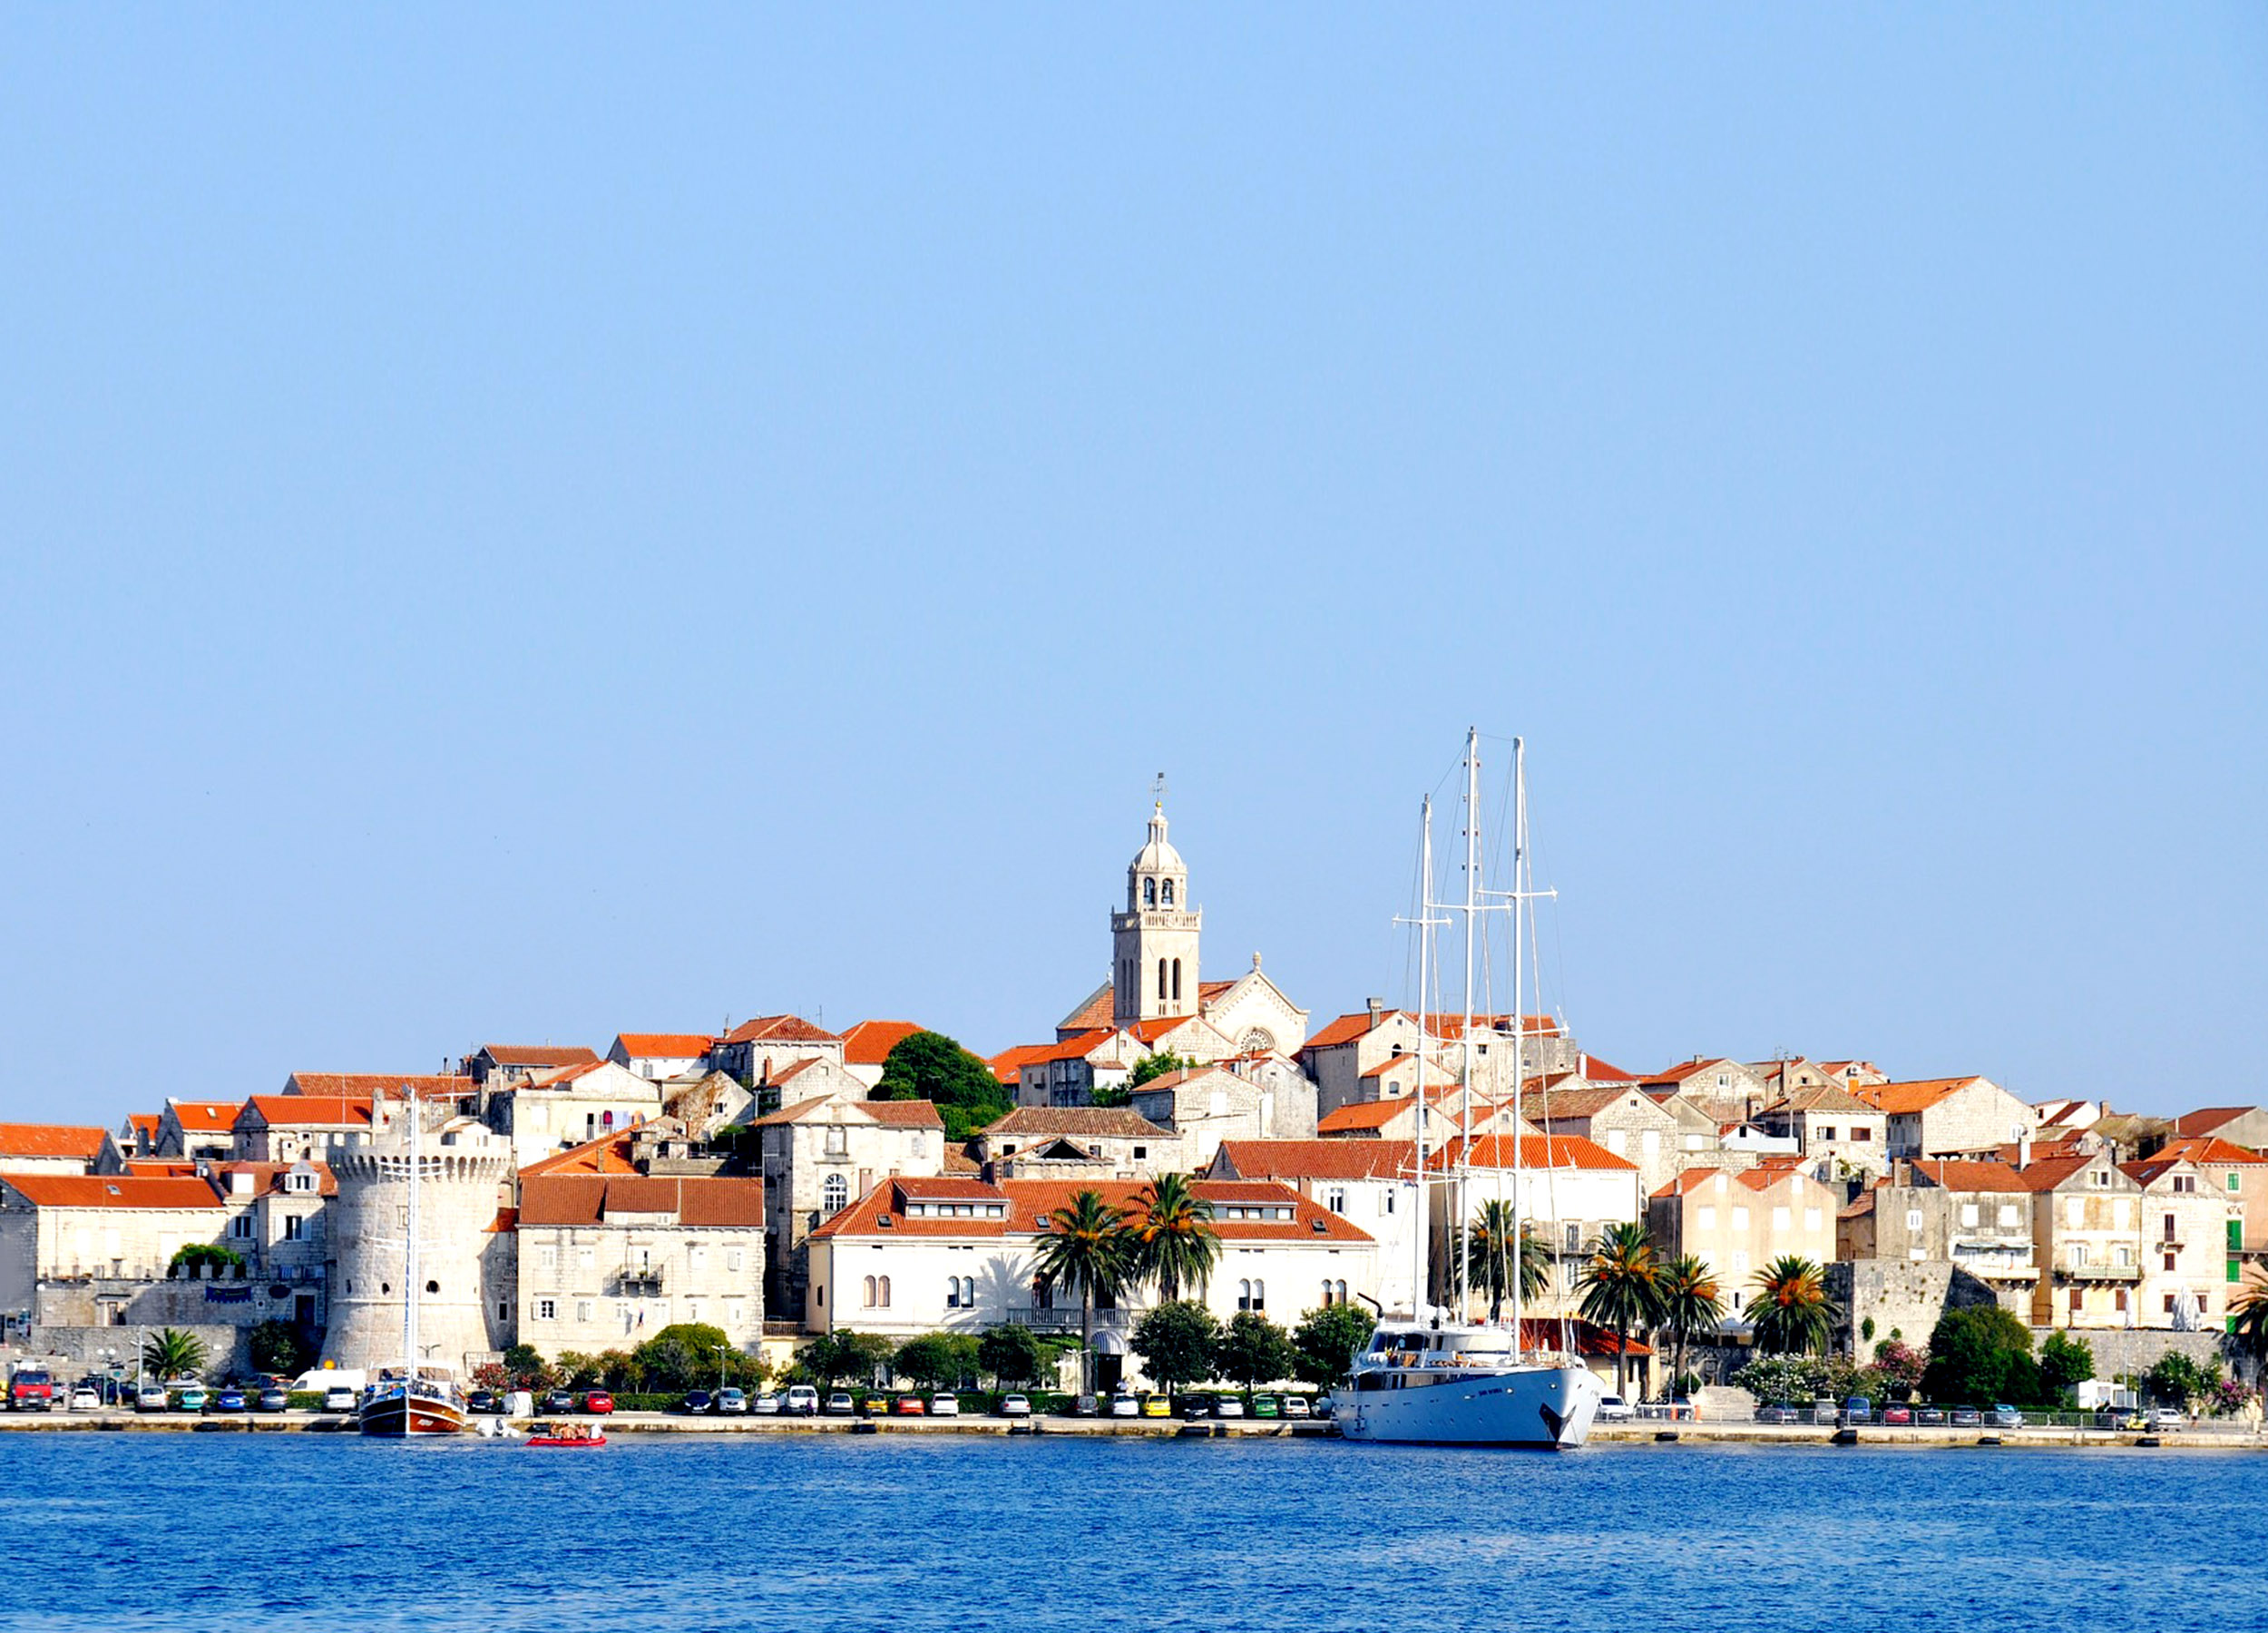 View from the sea of the red-roofed white buildings of Korcula in Croatia